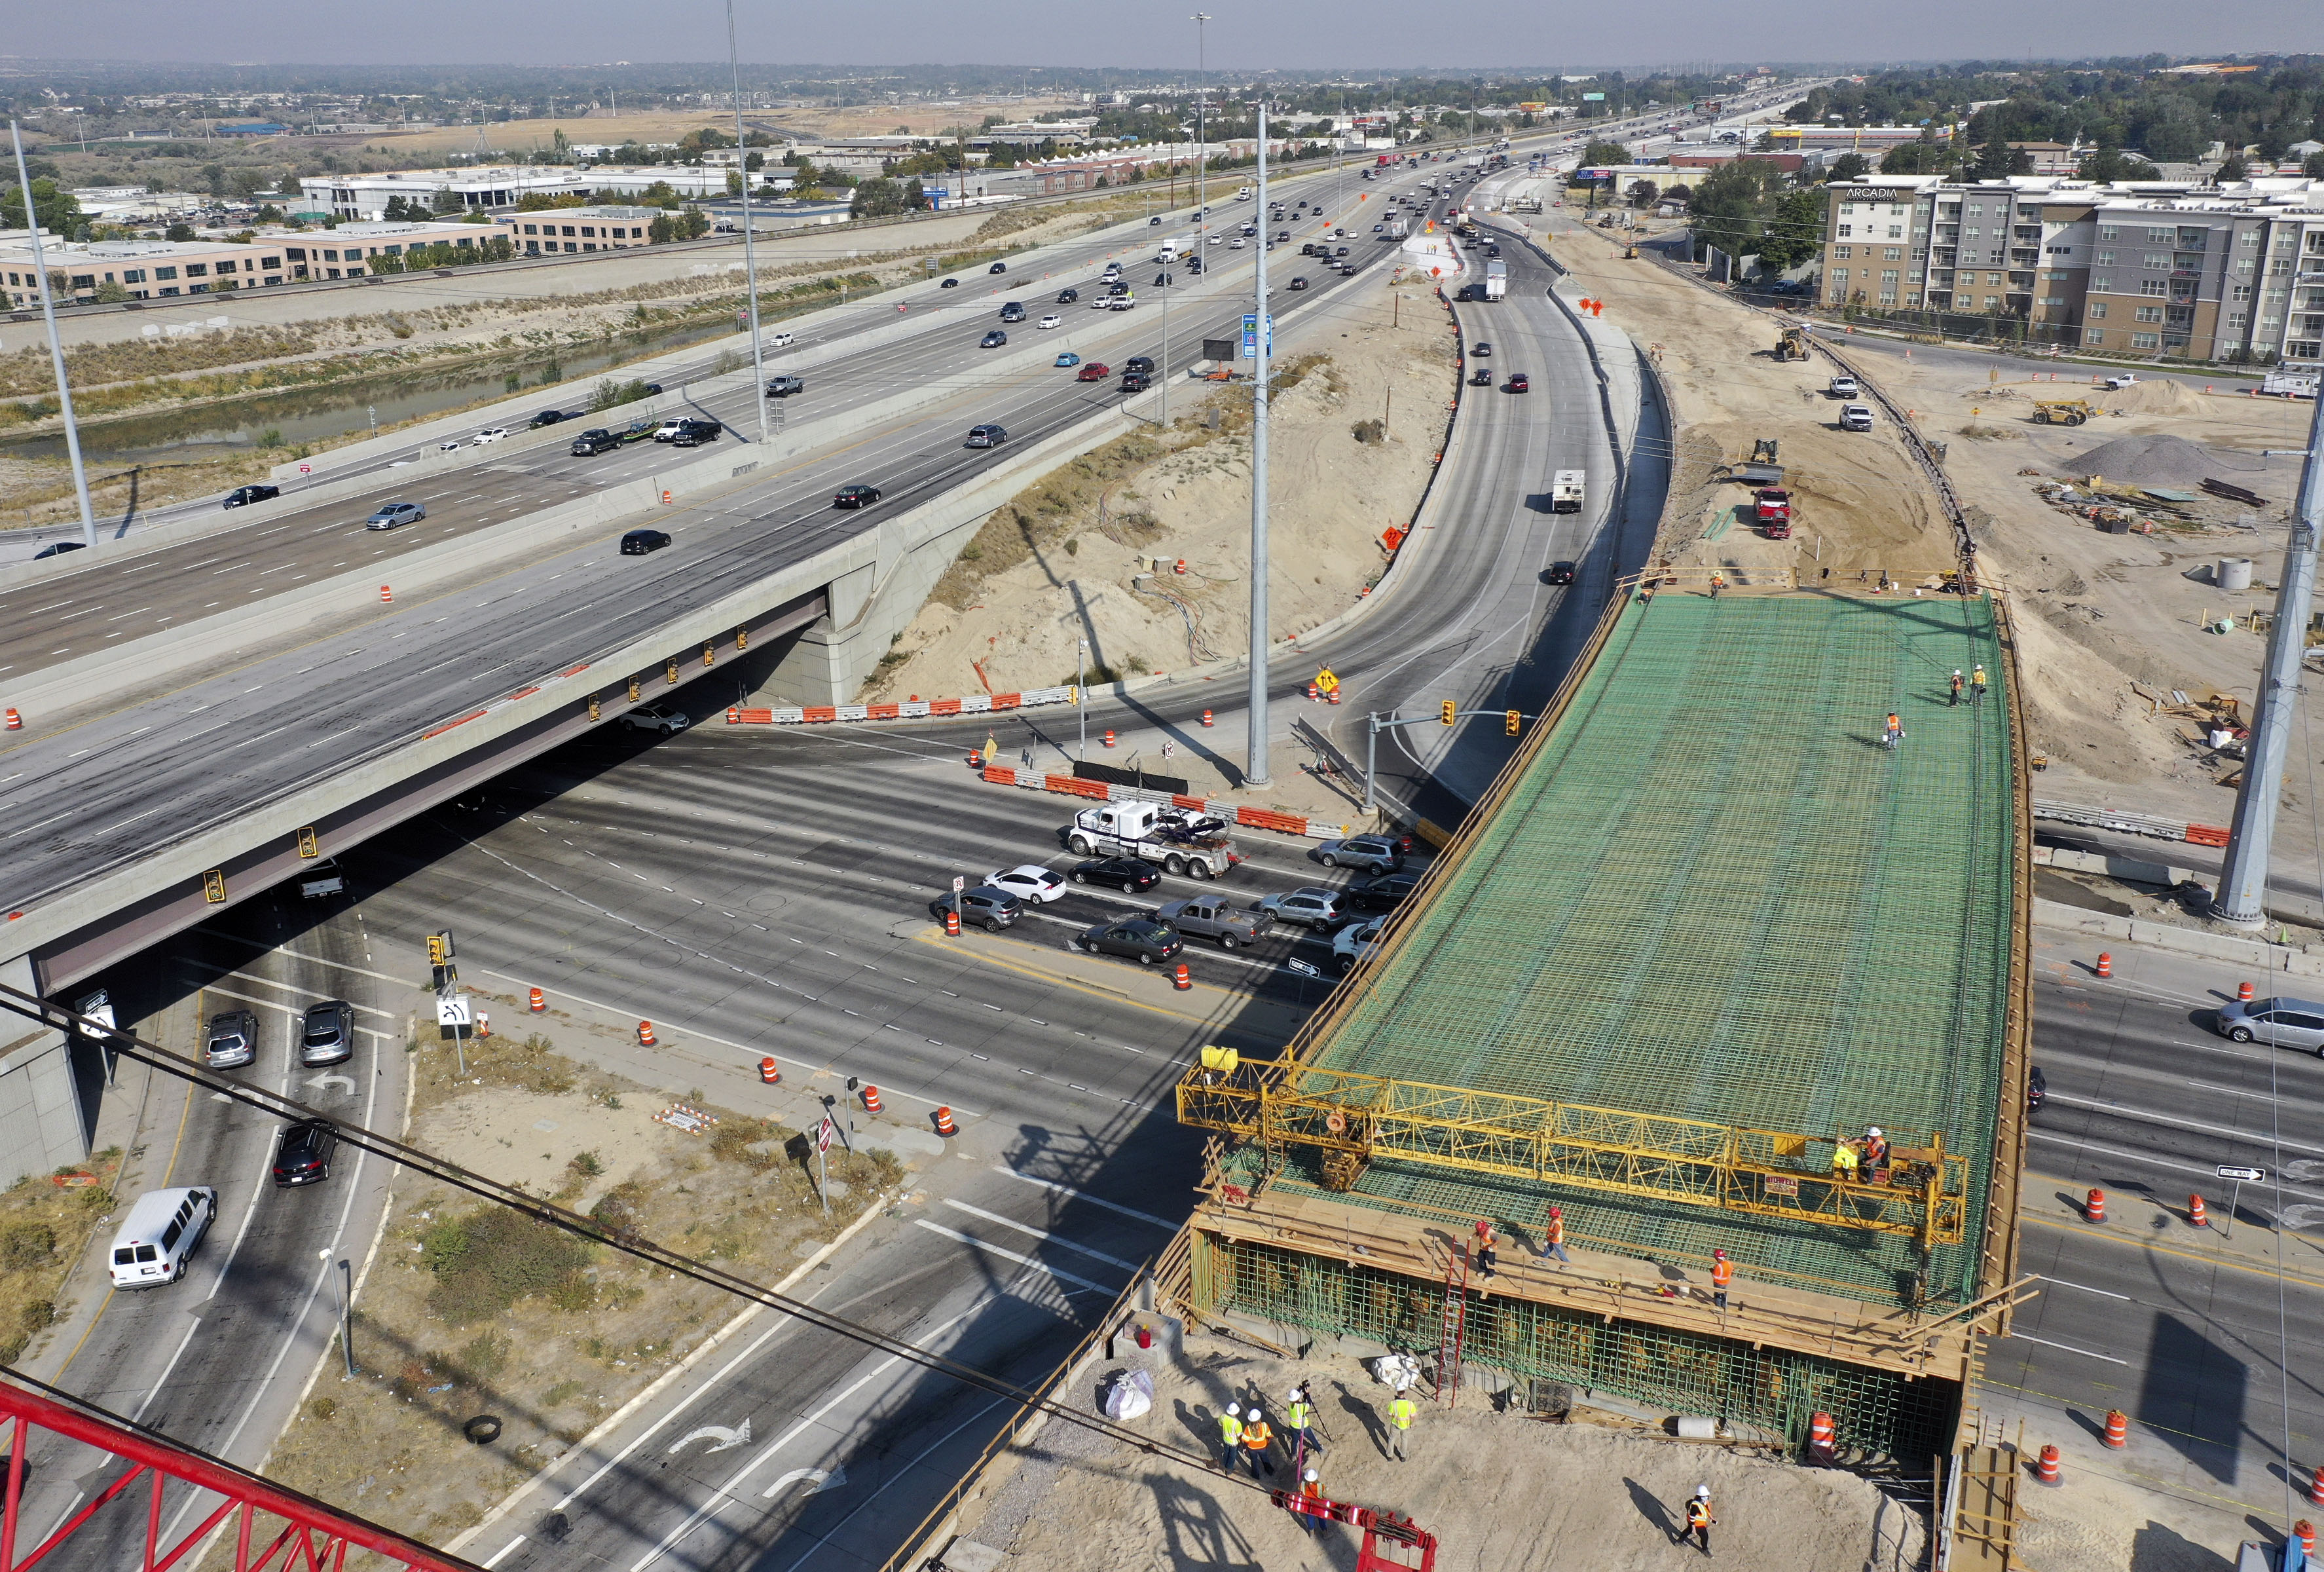 Ames Construction crews work on a new bridge over 9000 South that will be part of the northbound I-15 collector/distributor system in Sandy on Friday, Sept. 25, 2020.The collector/distributor will run parallel to northbound I-15 between 9400 South and the I-215 interchange and will improve access to I-215 and 7200 South.